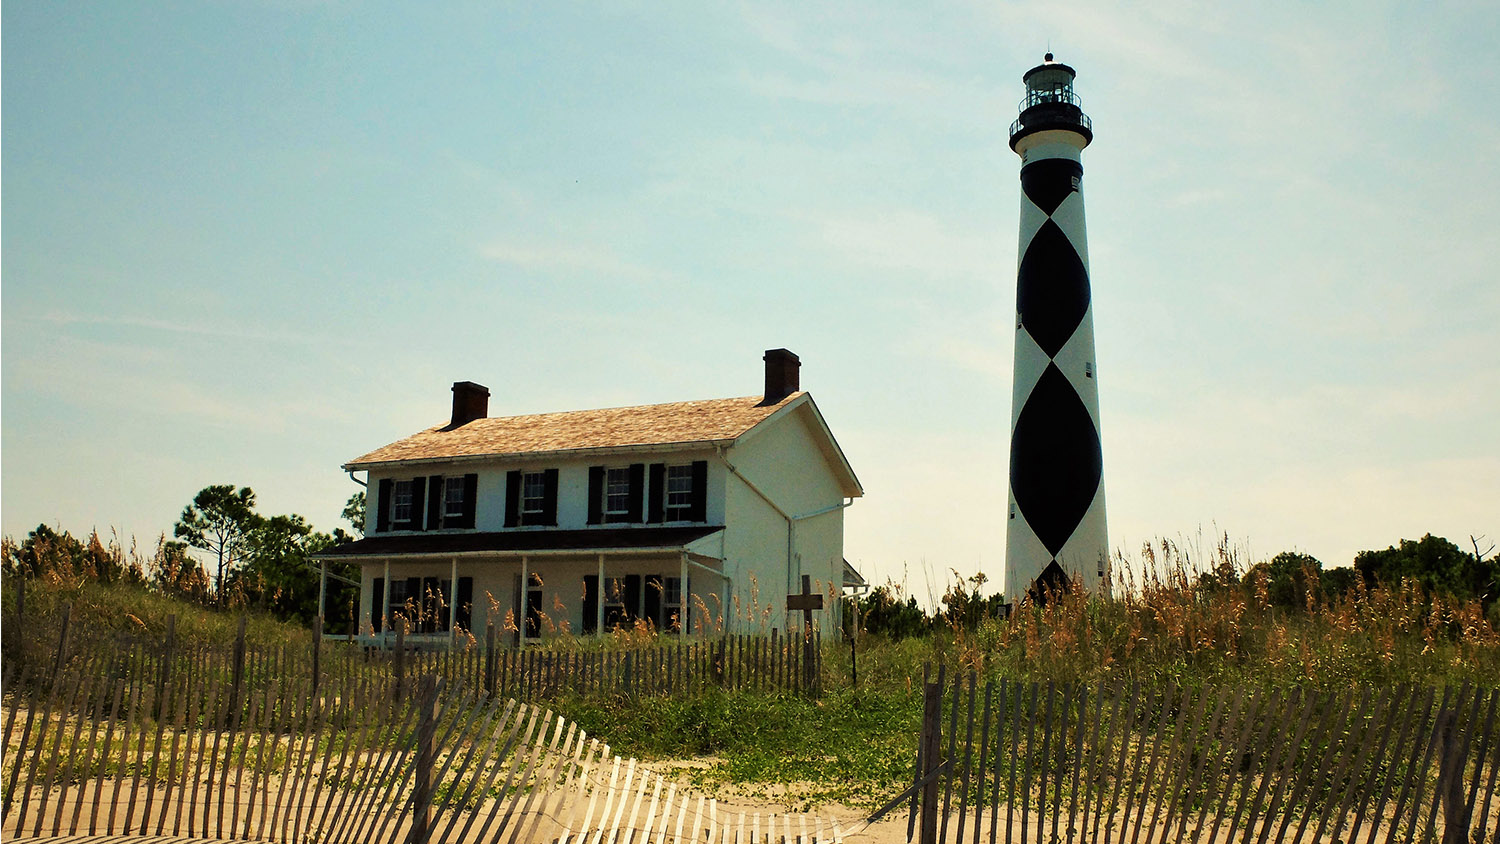 Lighthouse Next to a House - Extension and Outreach - Parks Recreation and Tourism Management NC State